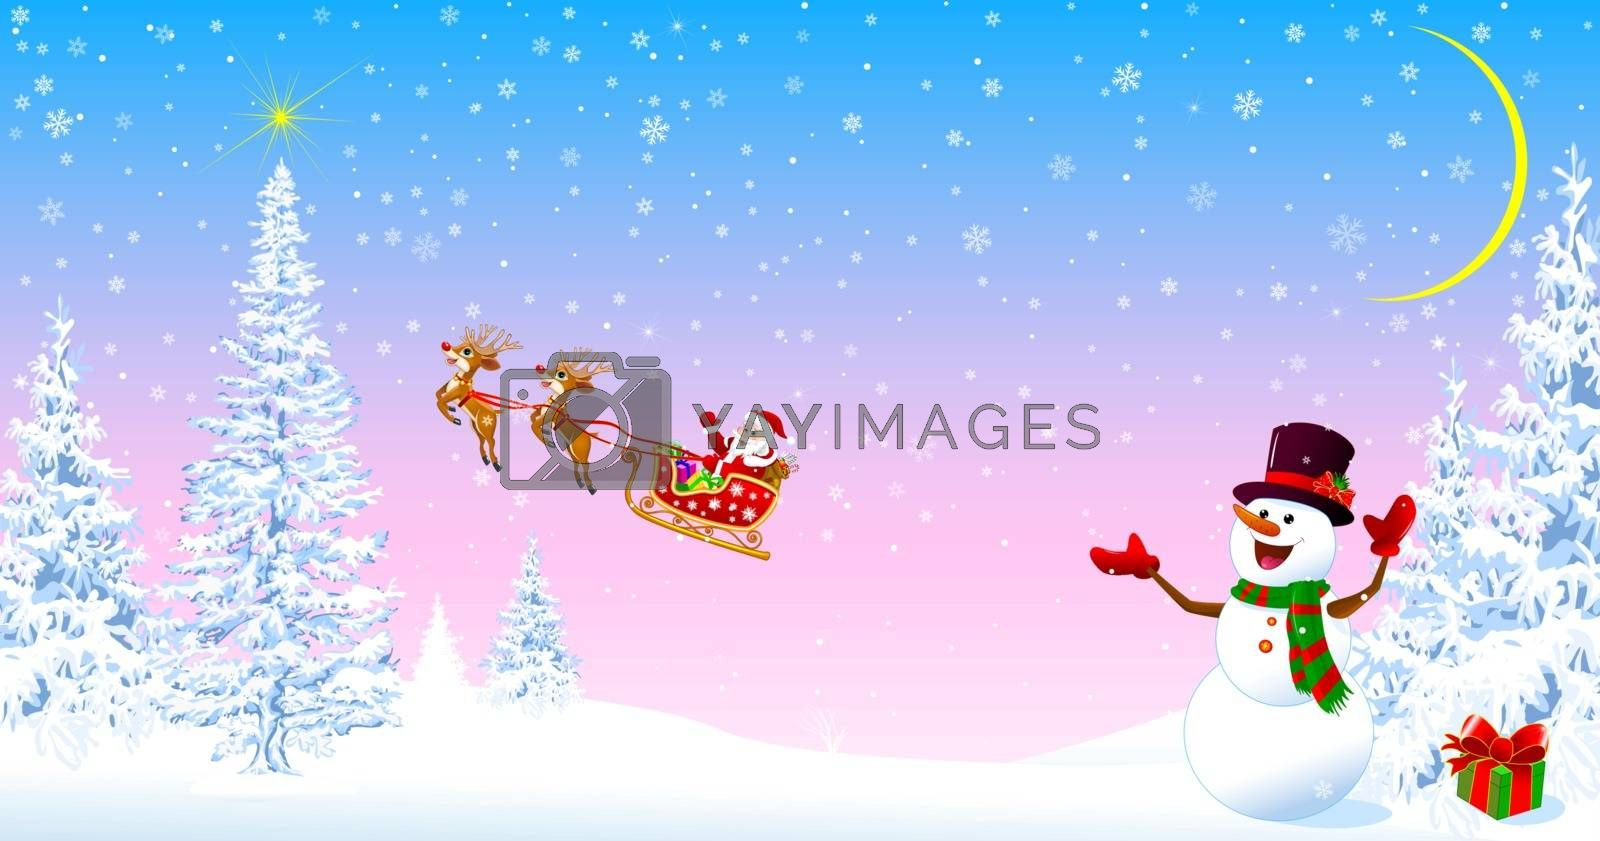 Santa on a sleigh with deers welcomes. Snowman in a hat welcomes. Christmas tree. Star in the sky. Snowy forest. Santa and snowman on the background of fir trees and snowflakes.